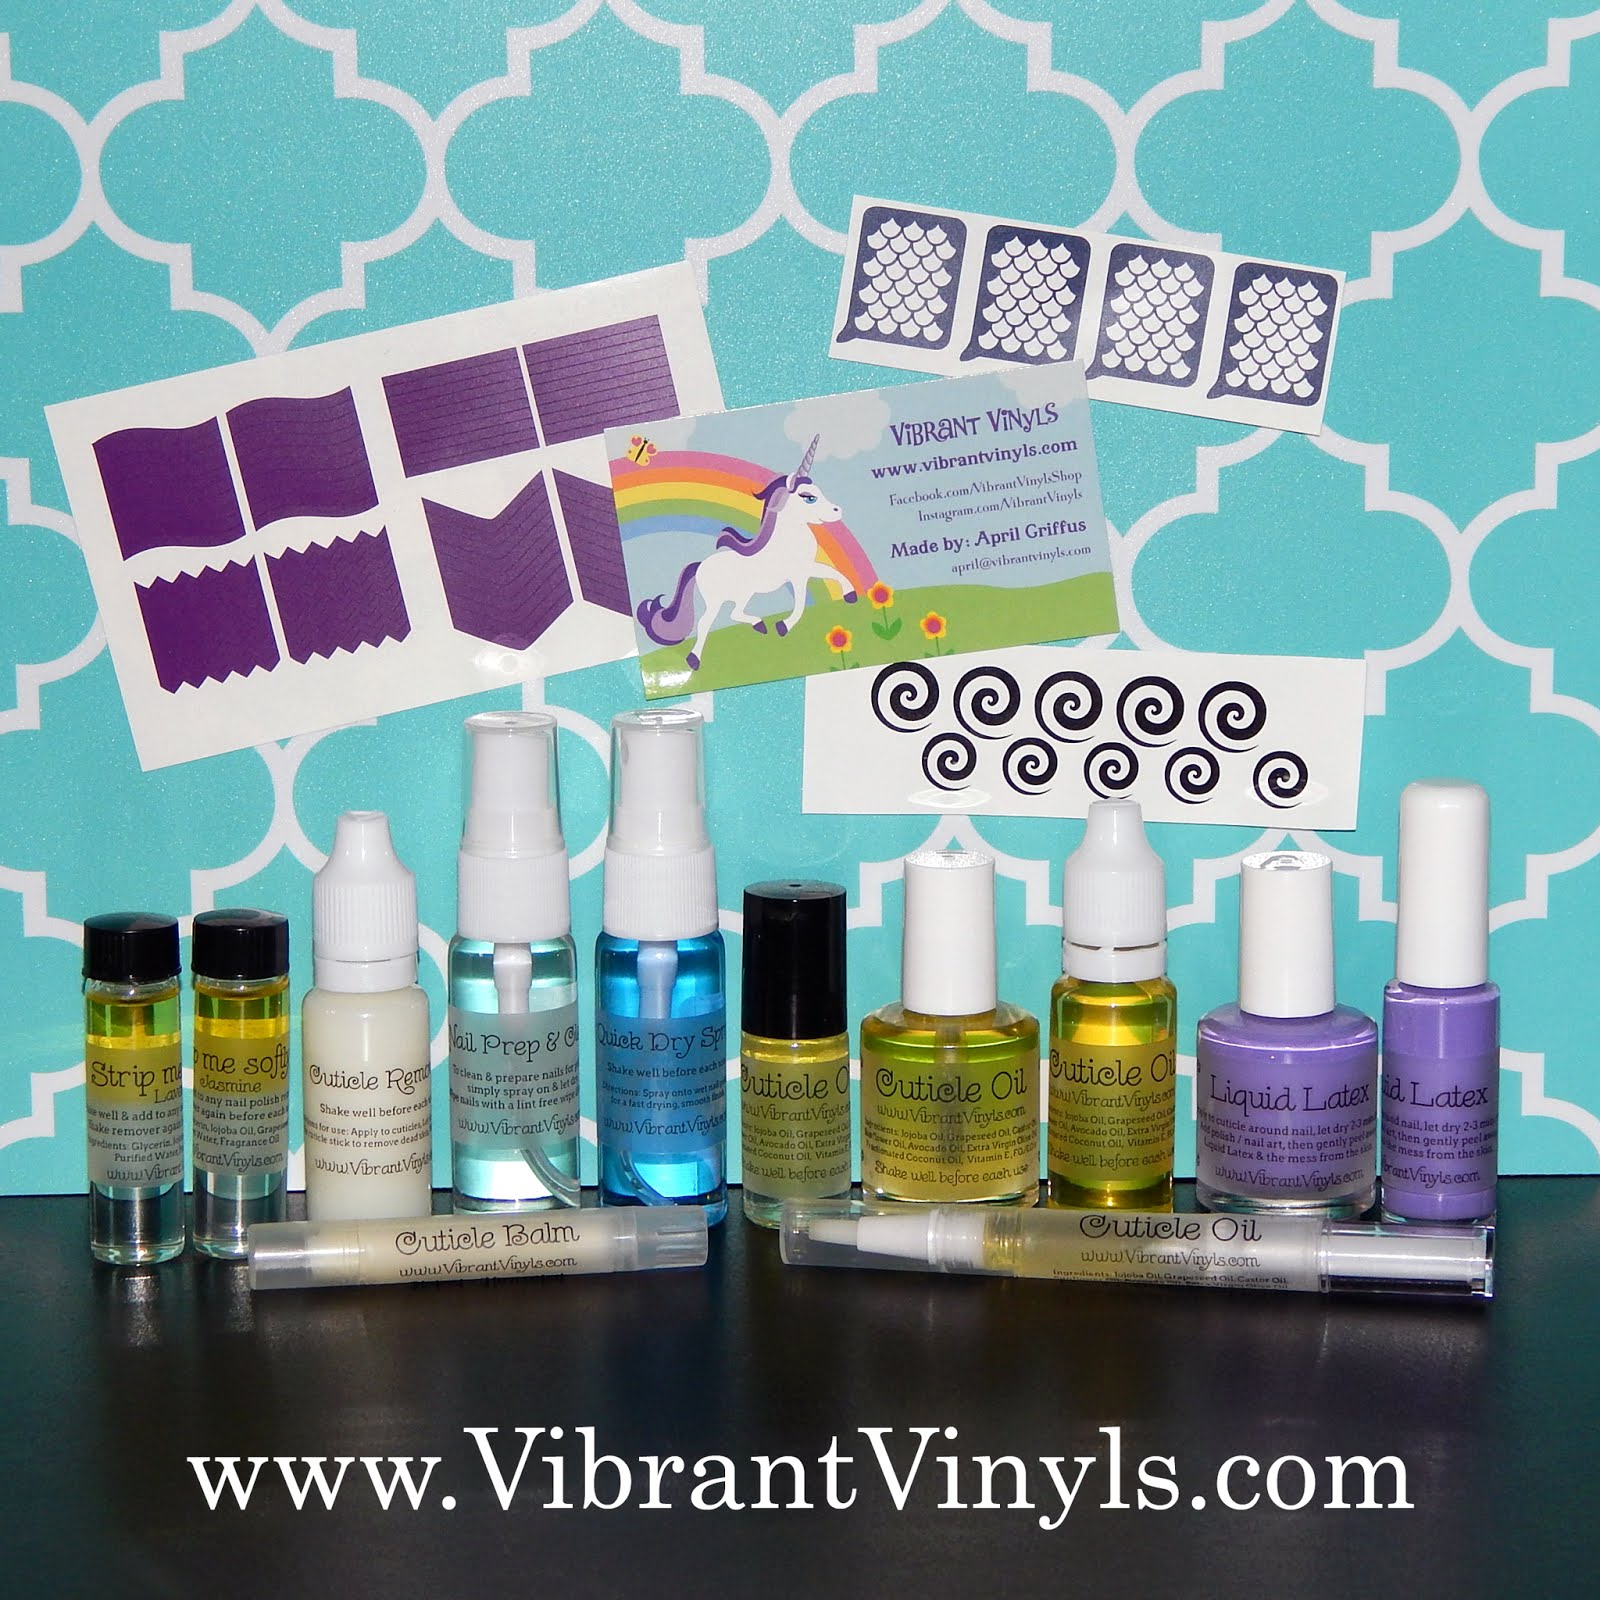 Featuring a full line of nail art & nail care products!